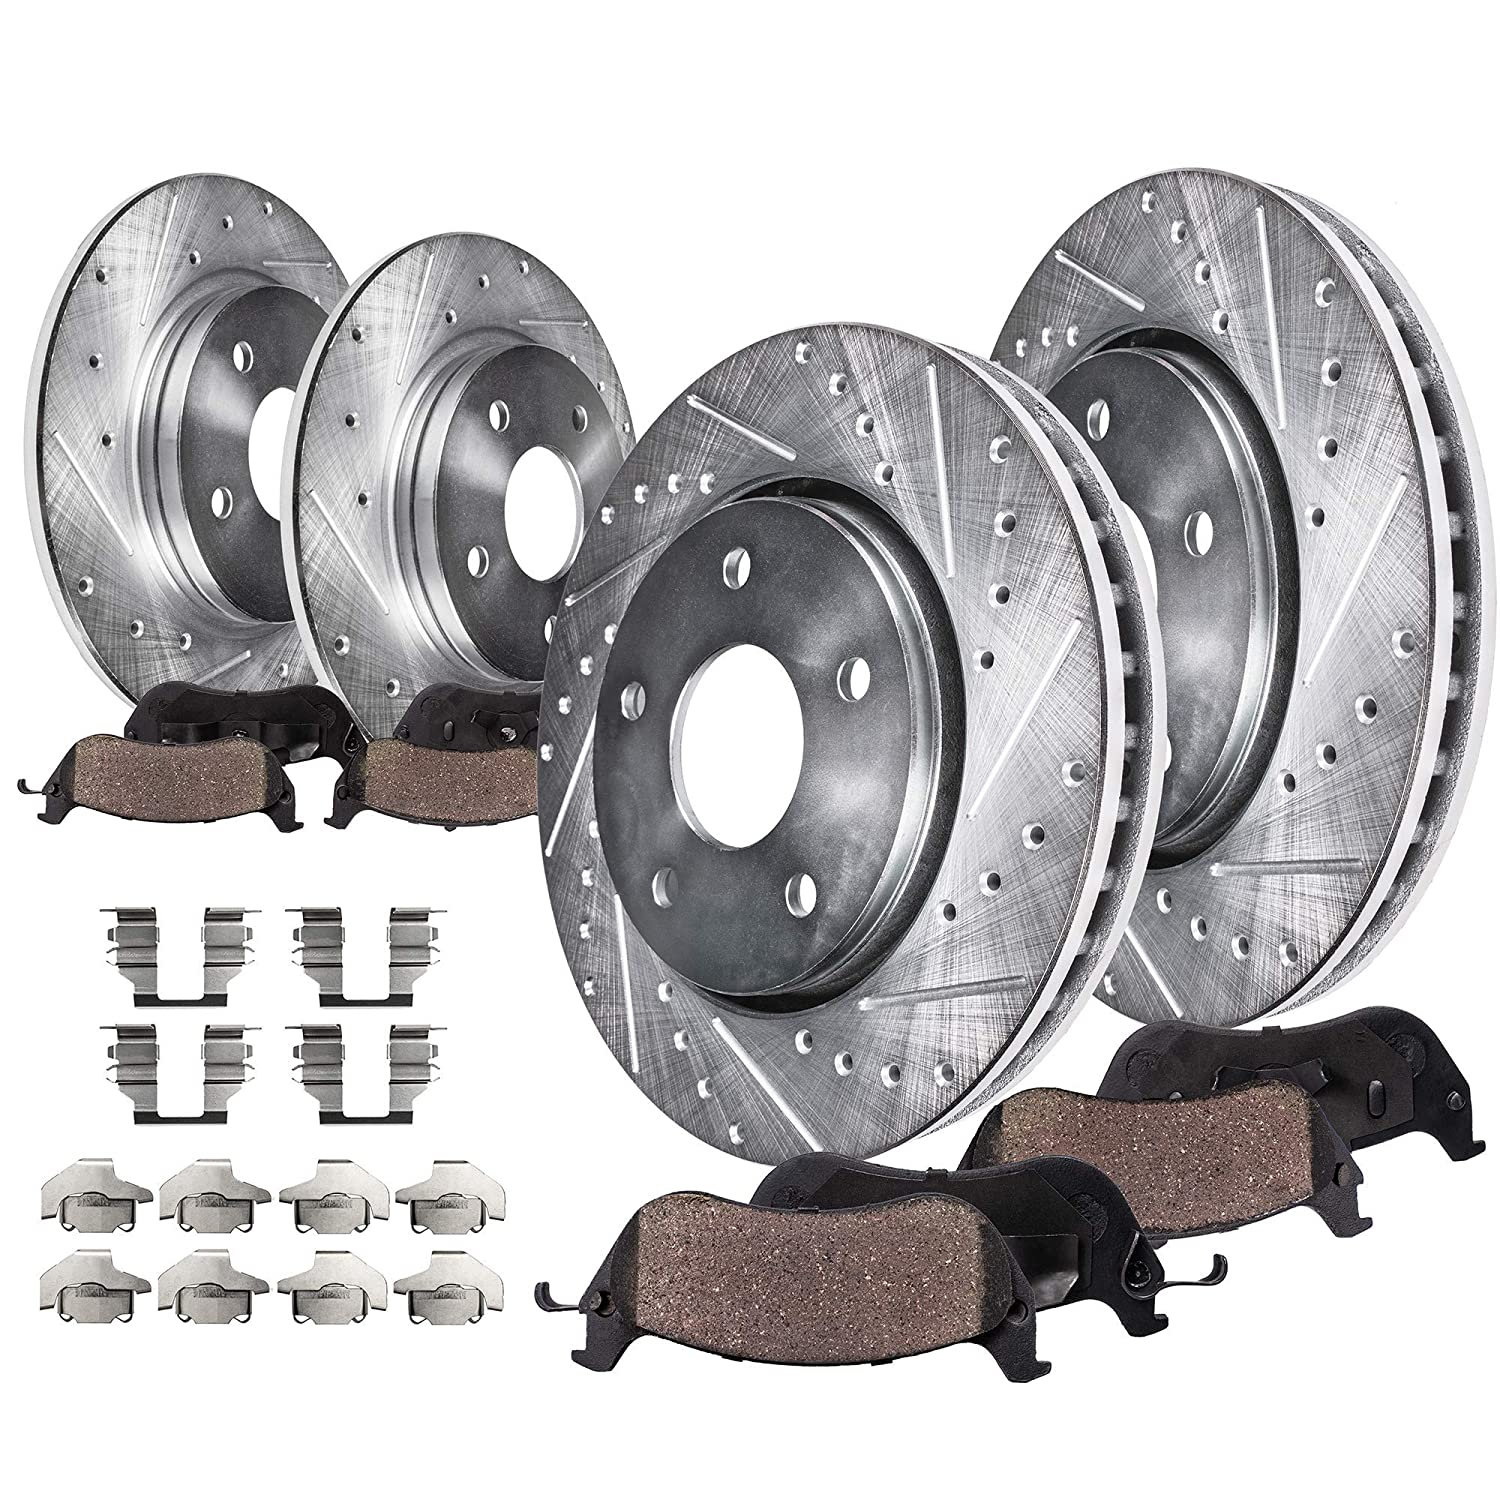 Drilled Front Brakes Rotor /& Ceramic Pads for Chevy Monte Carlo Impala LeSabre